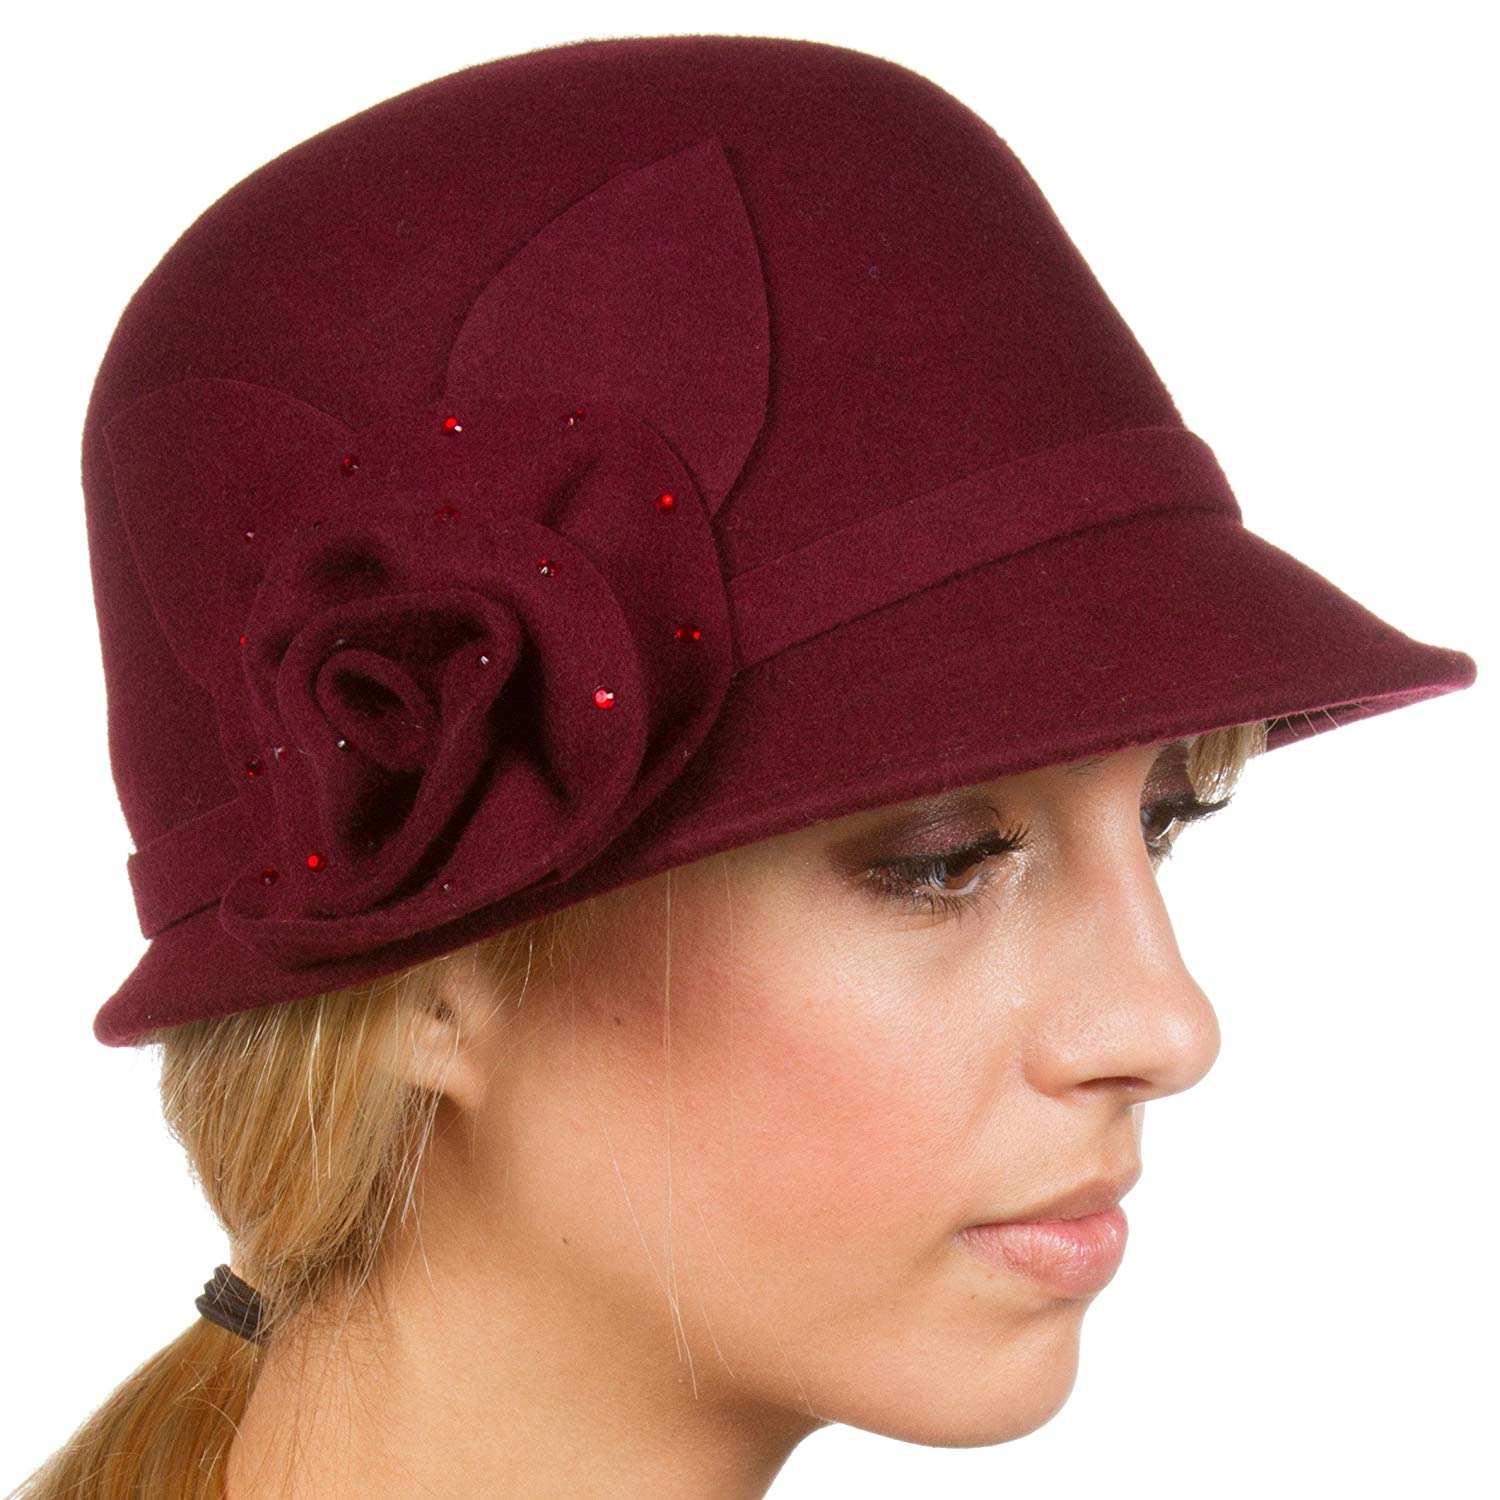 8616c4803bf Get Quotations · Sakkas Jewel Vintage Style Wool Cloche Bell Hat